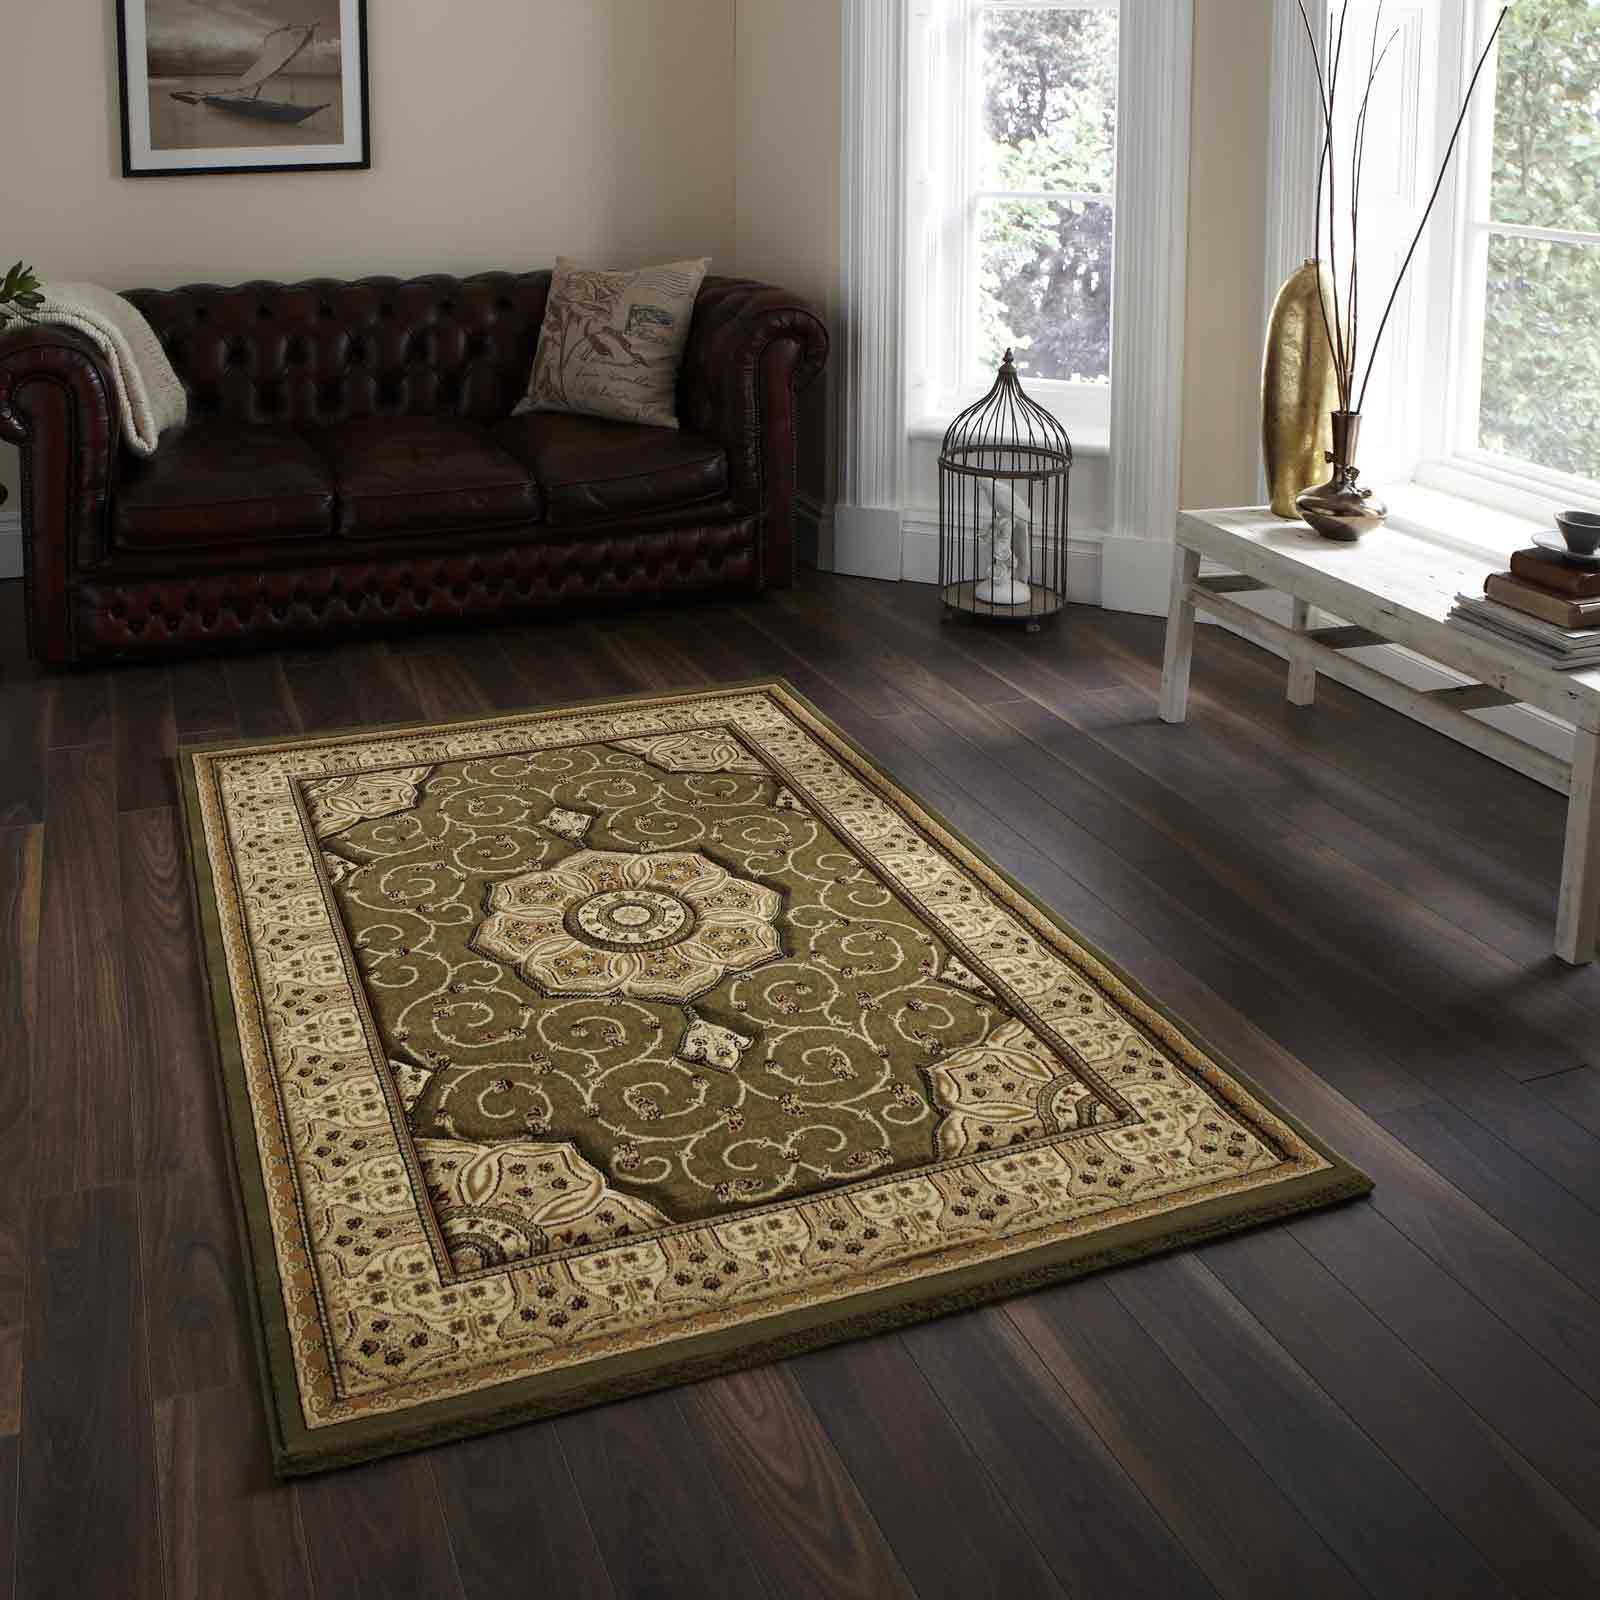 Heritage 4400 Rugs in Green